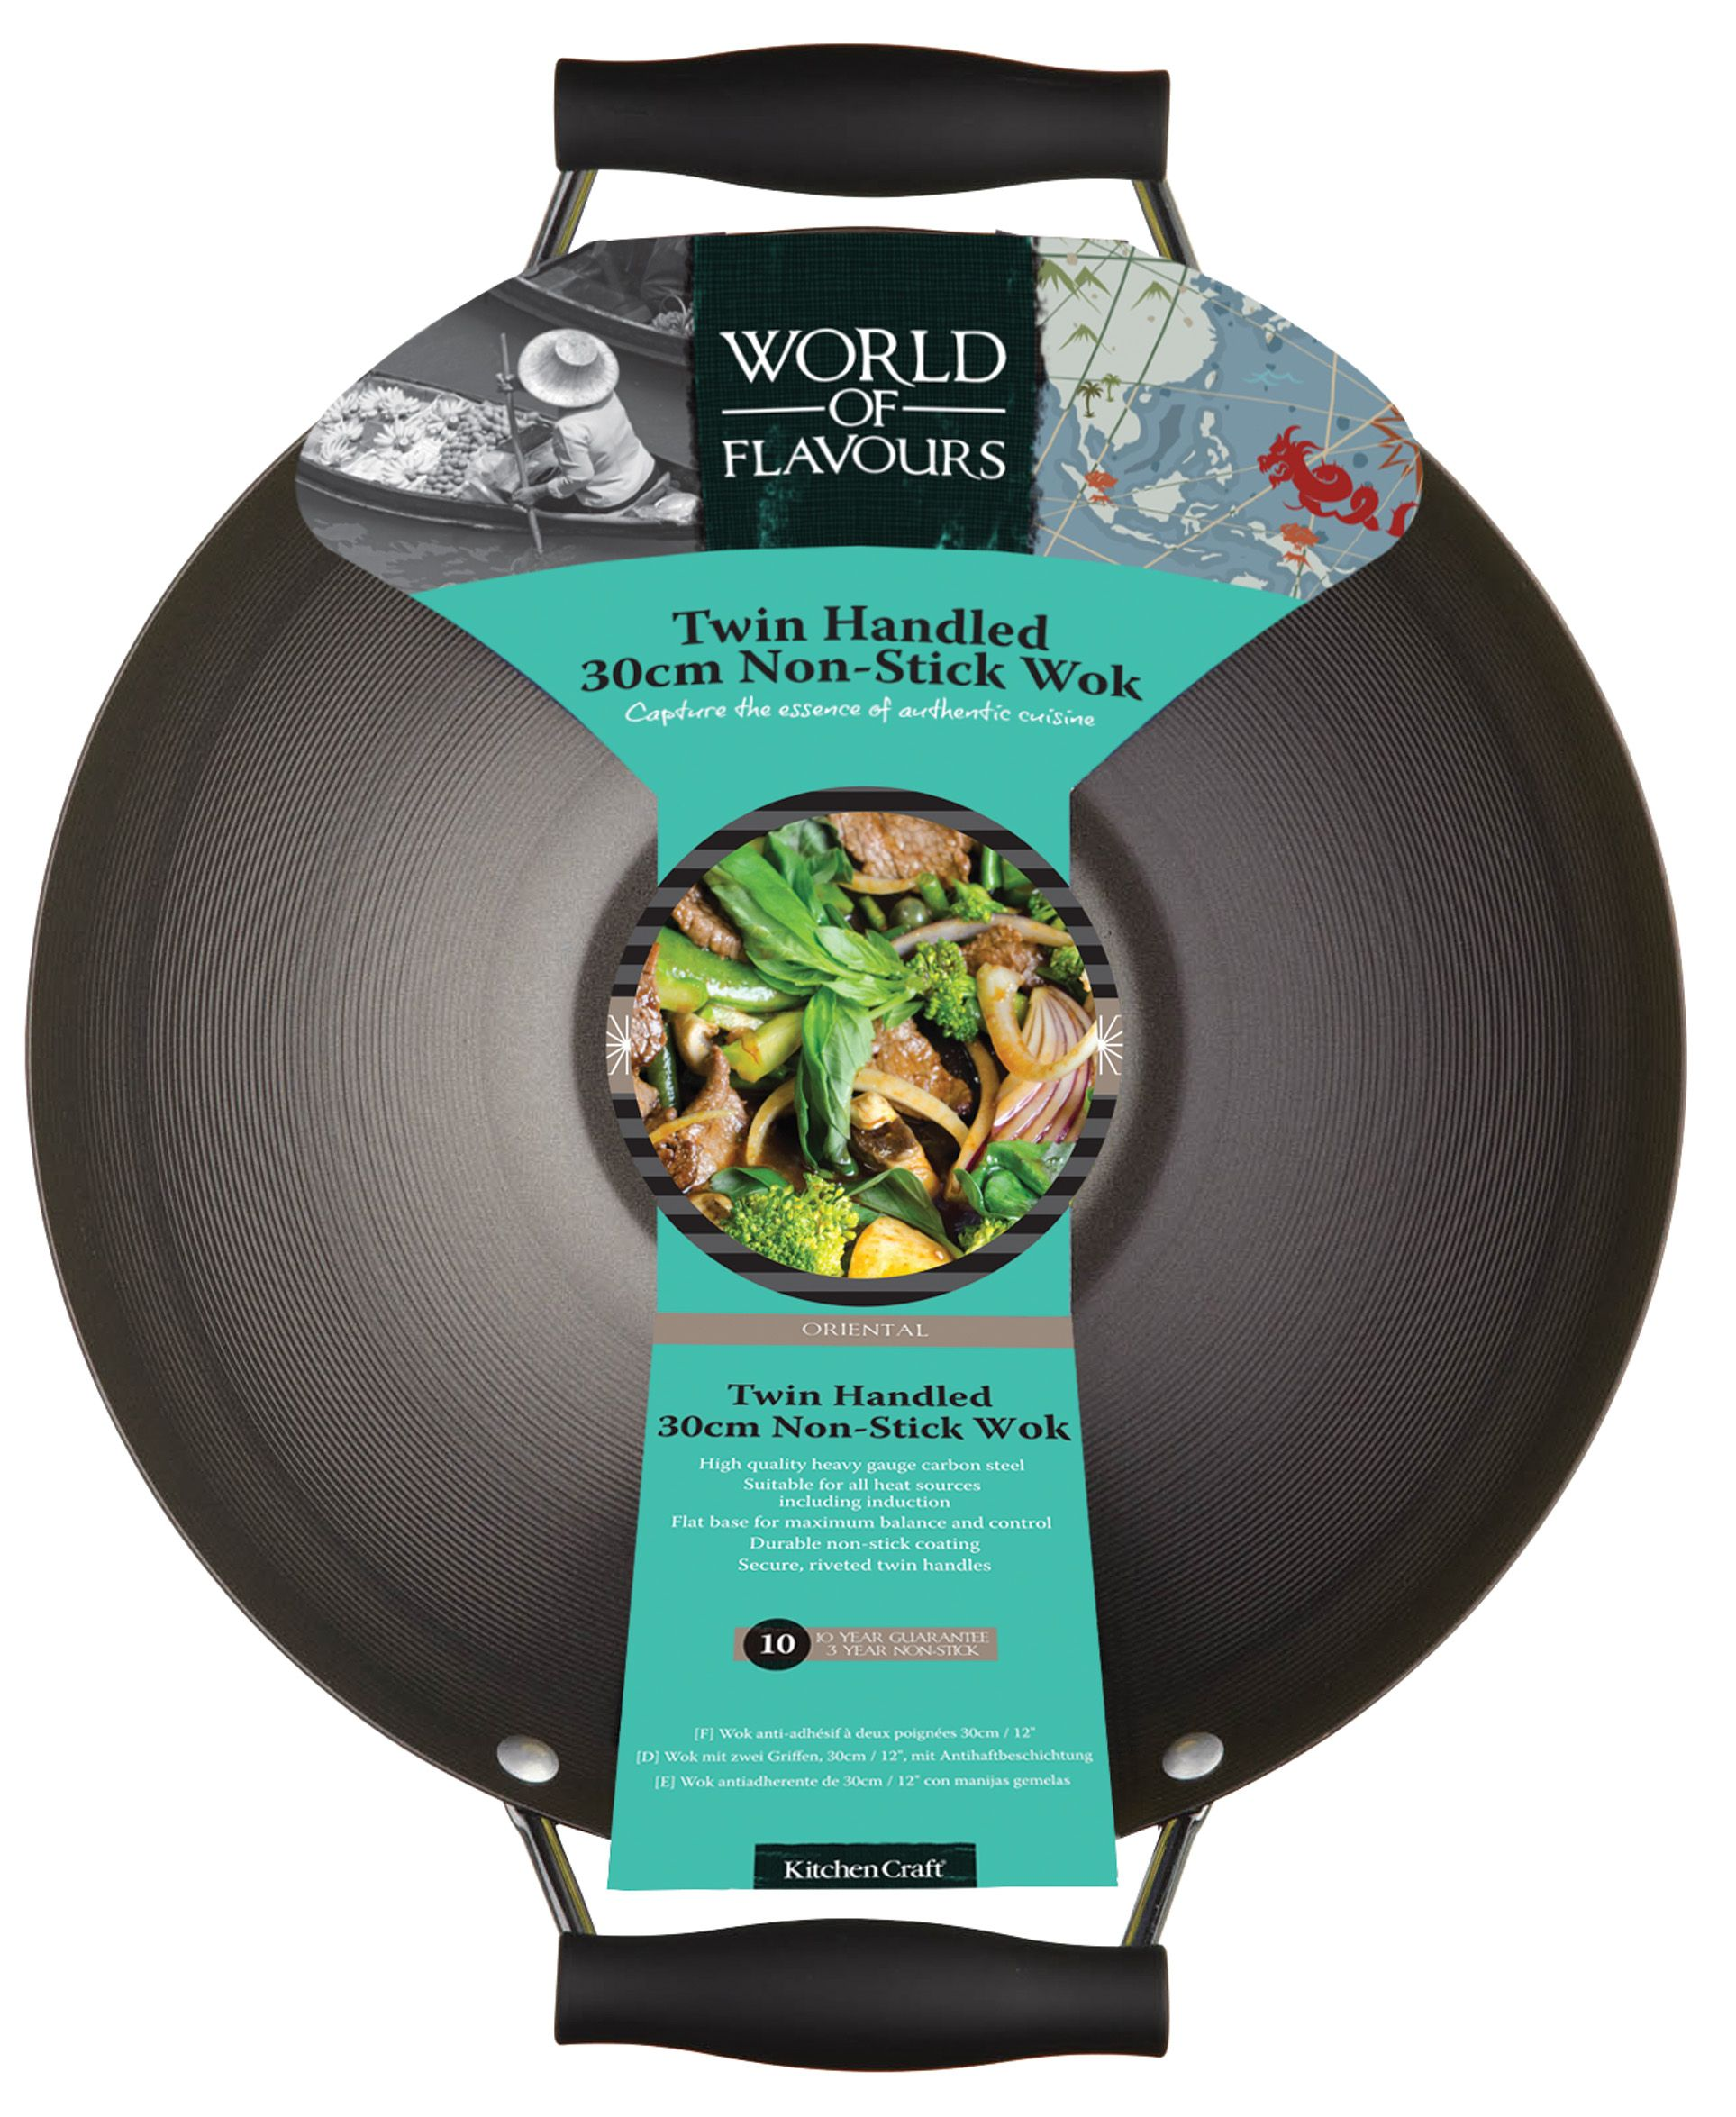 WORLD OF FLAVOURS ORIENTAL DOUBLE HANDLED CARBON STEEL 30CM WOK ...